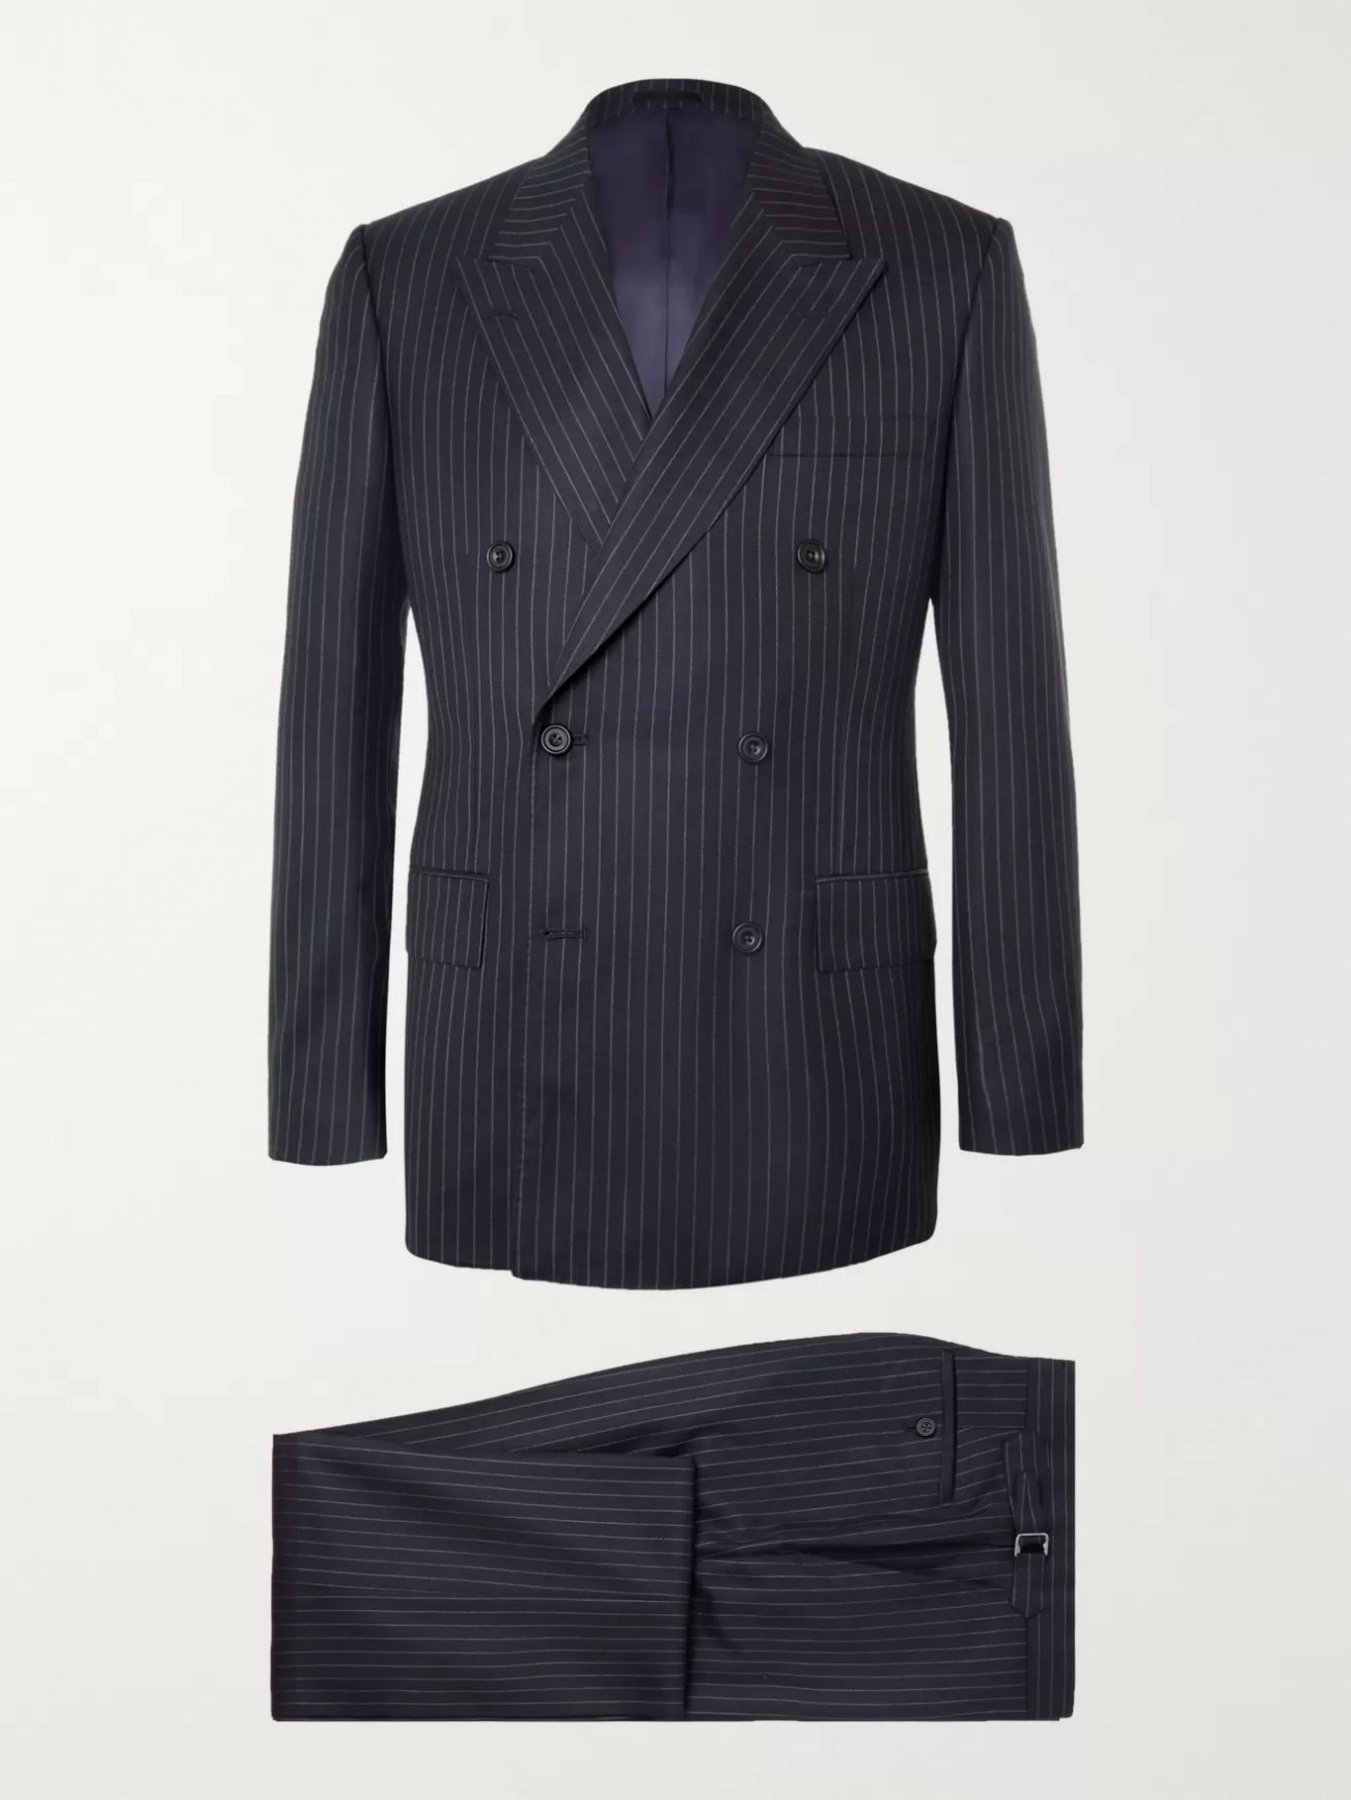 kingsman double-breasted suit